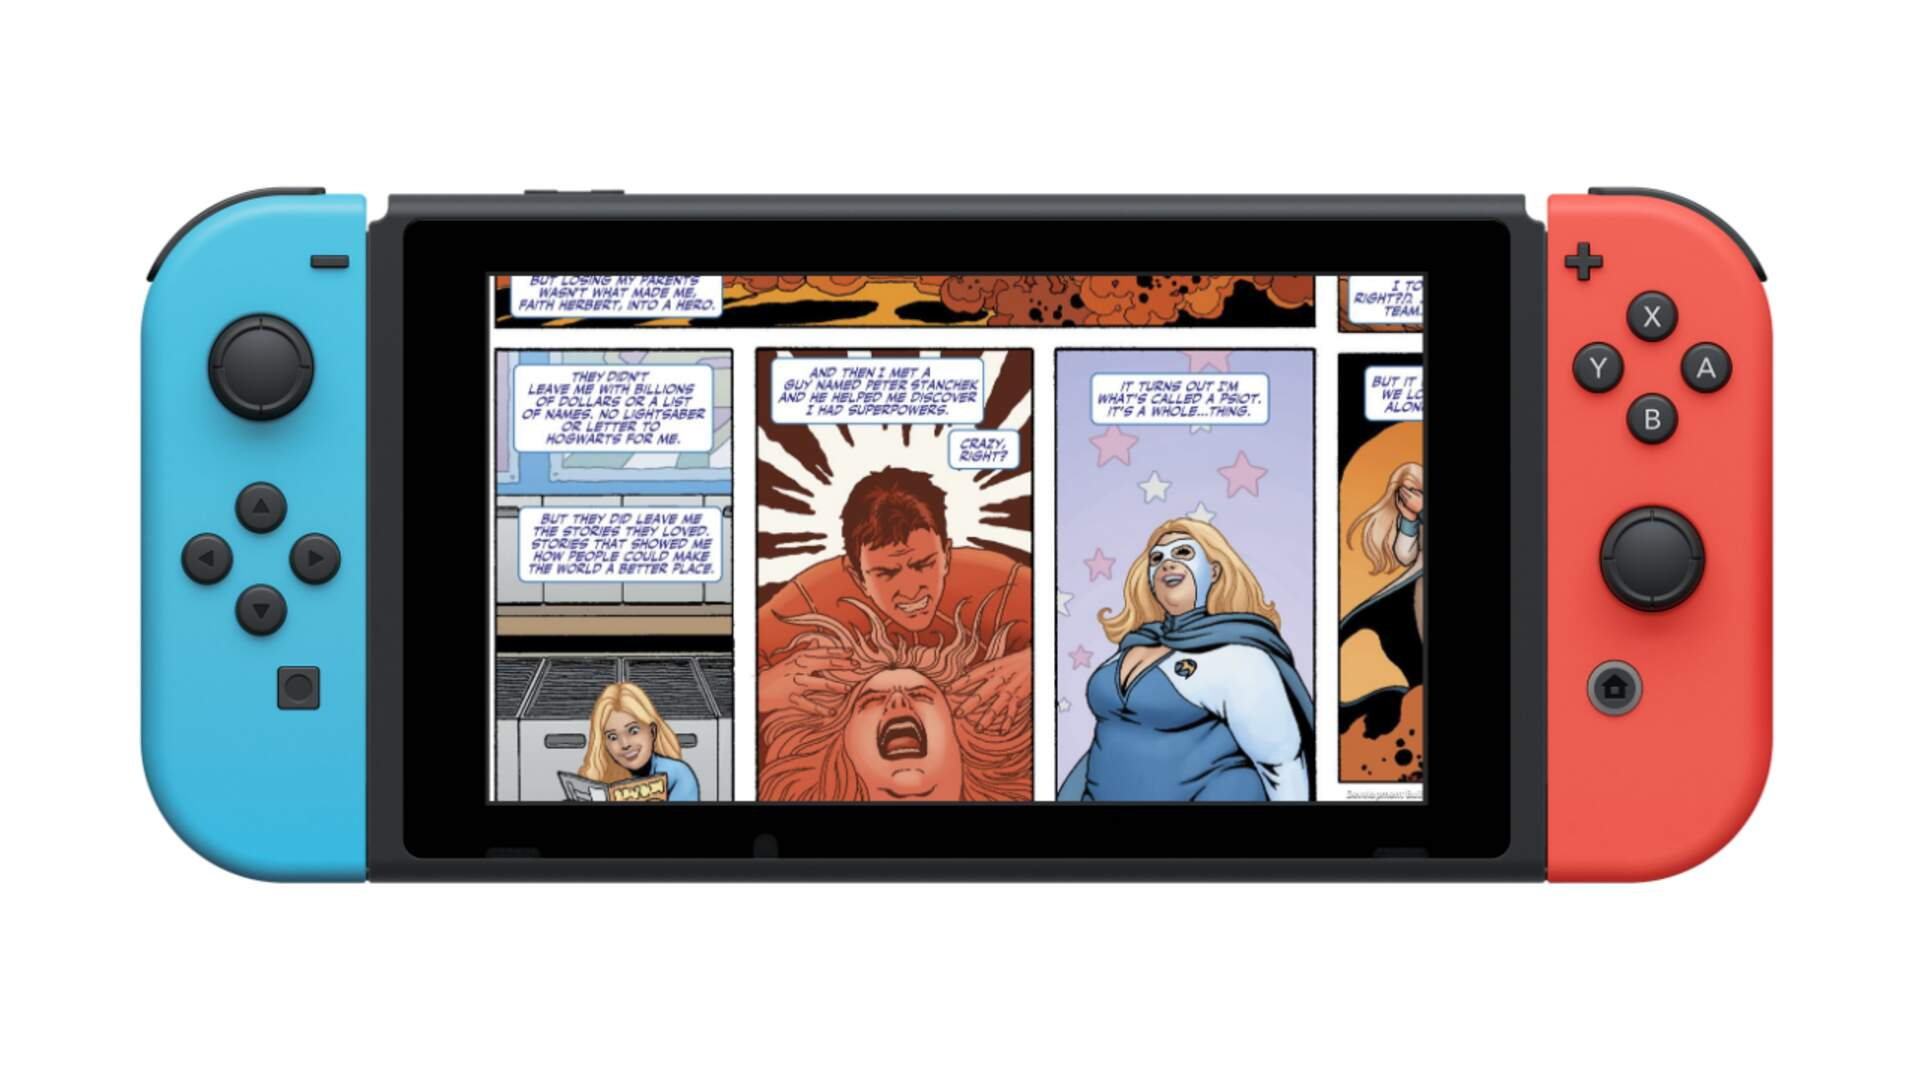 InkyPen is a New Digital Subscription Service That Delivers Comics to the Switch